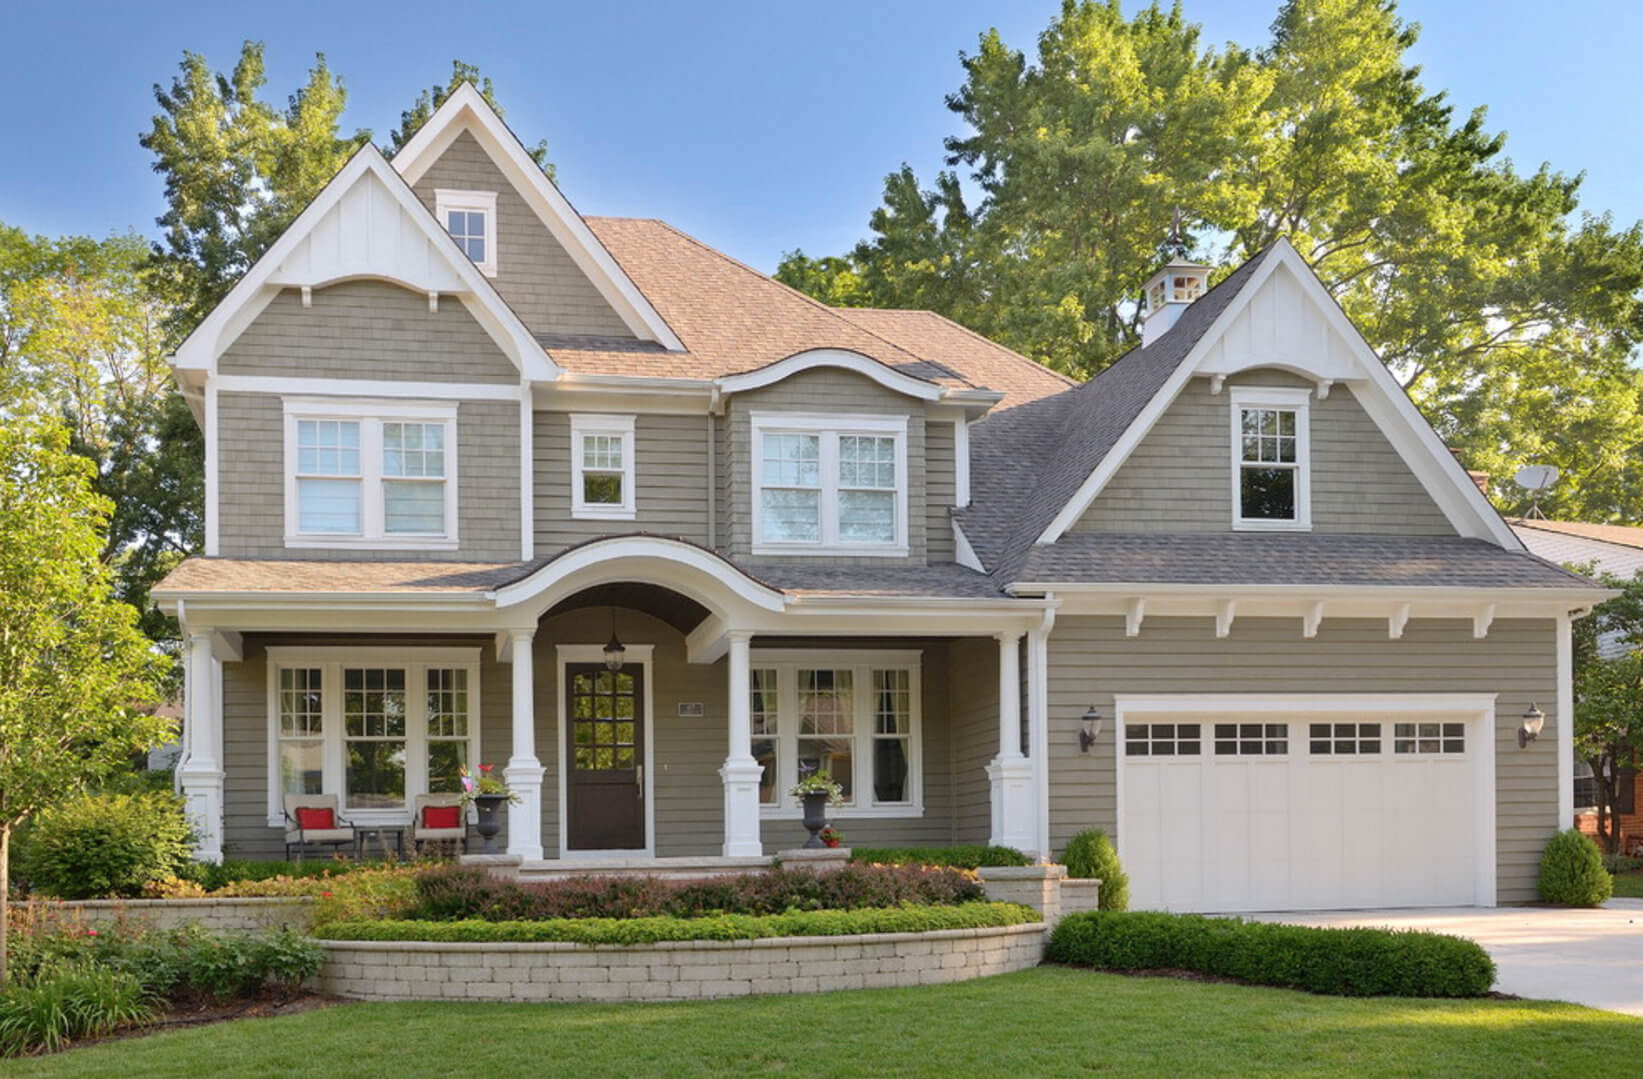 Get the right builder for your home